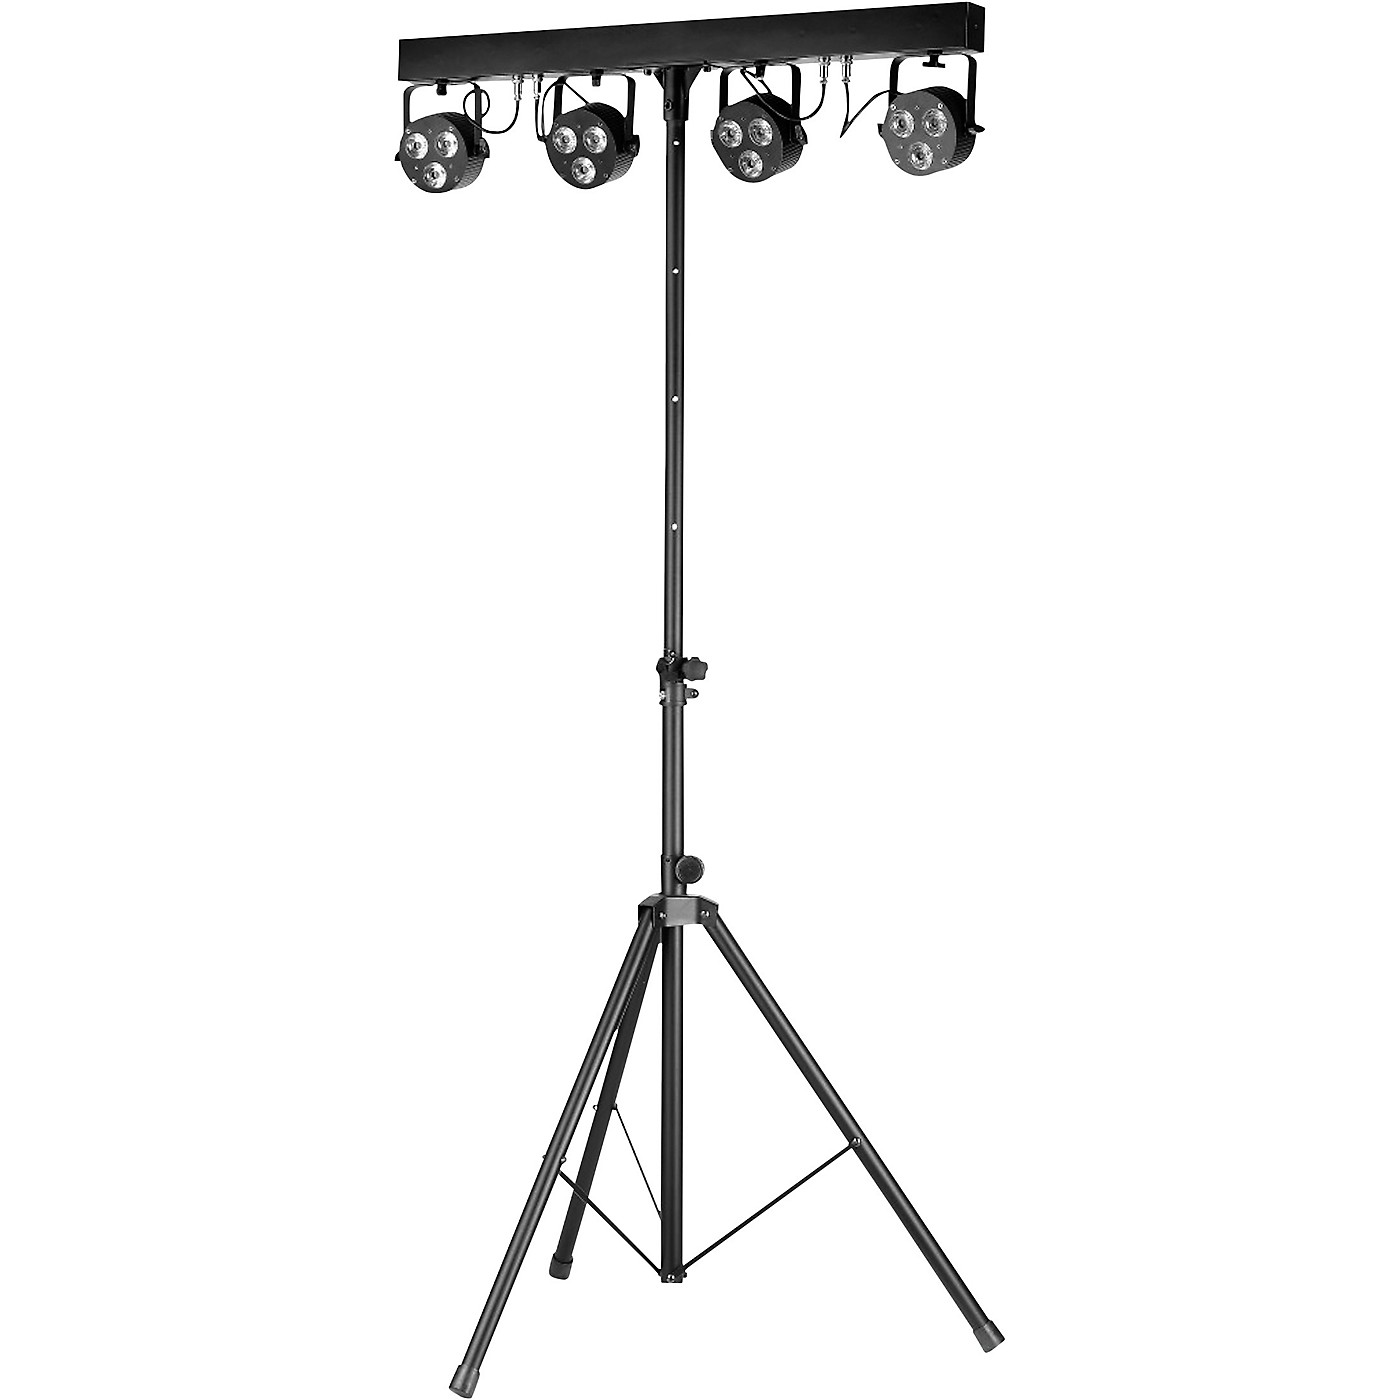 Stagg Performer Light Set RGBW LED System with Stand thumbnail